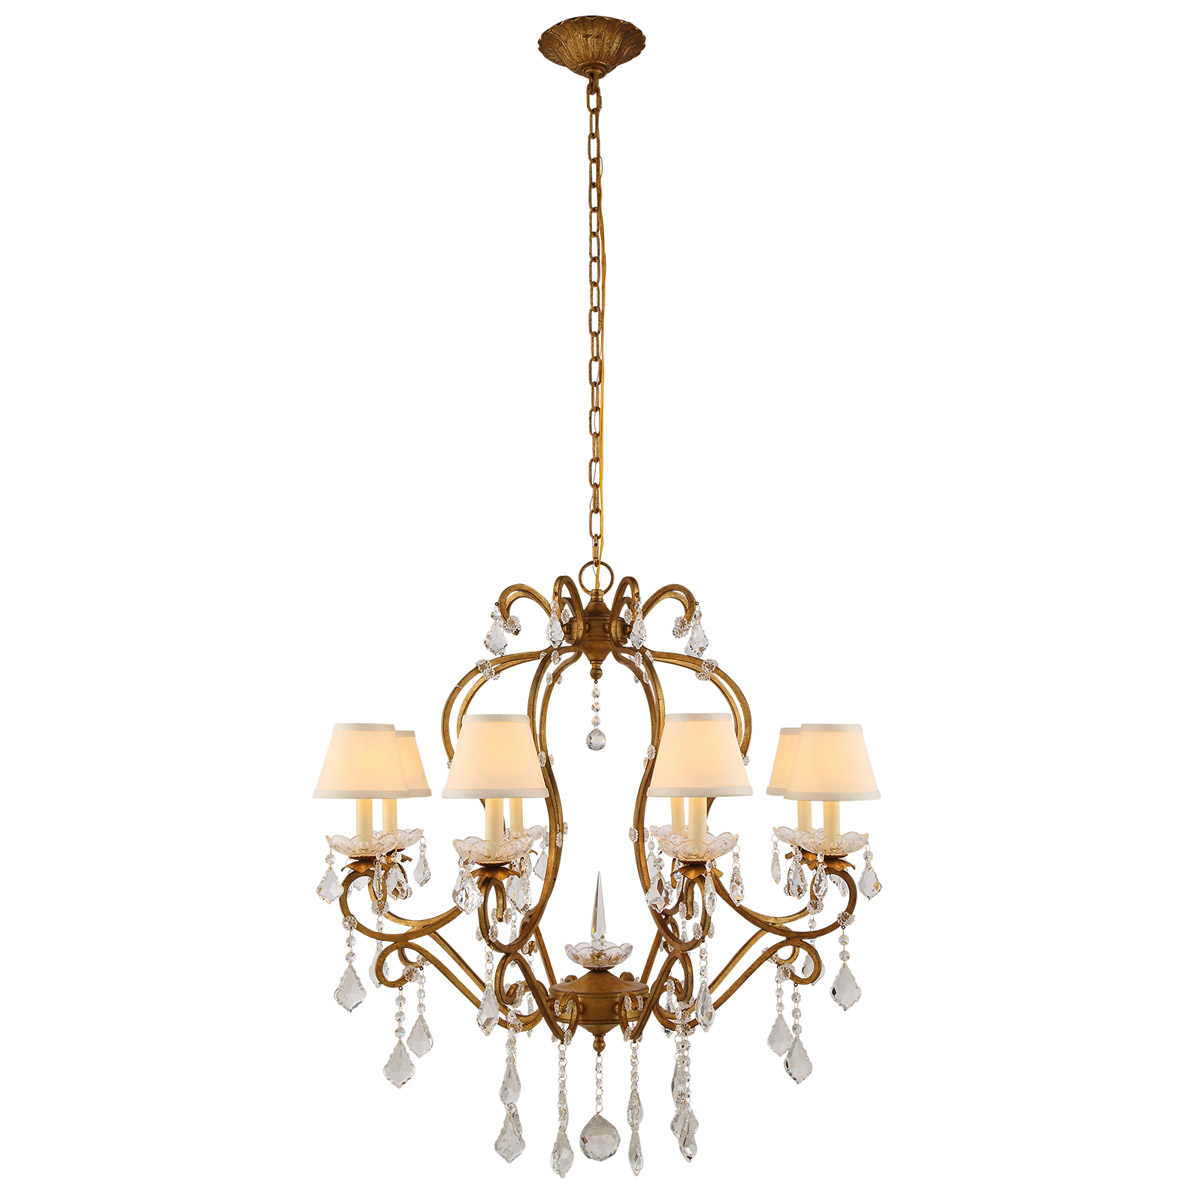 Details About Crystal Chandelier Golden Wrought Iron Lamp Shades Kitchen Lighting 8 Light 34